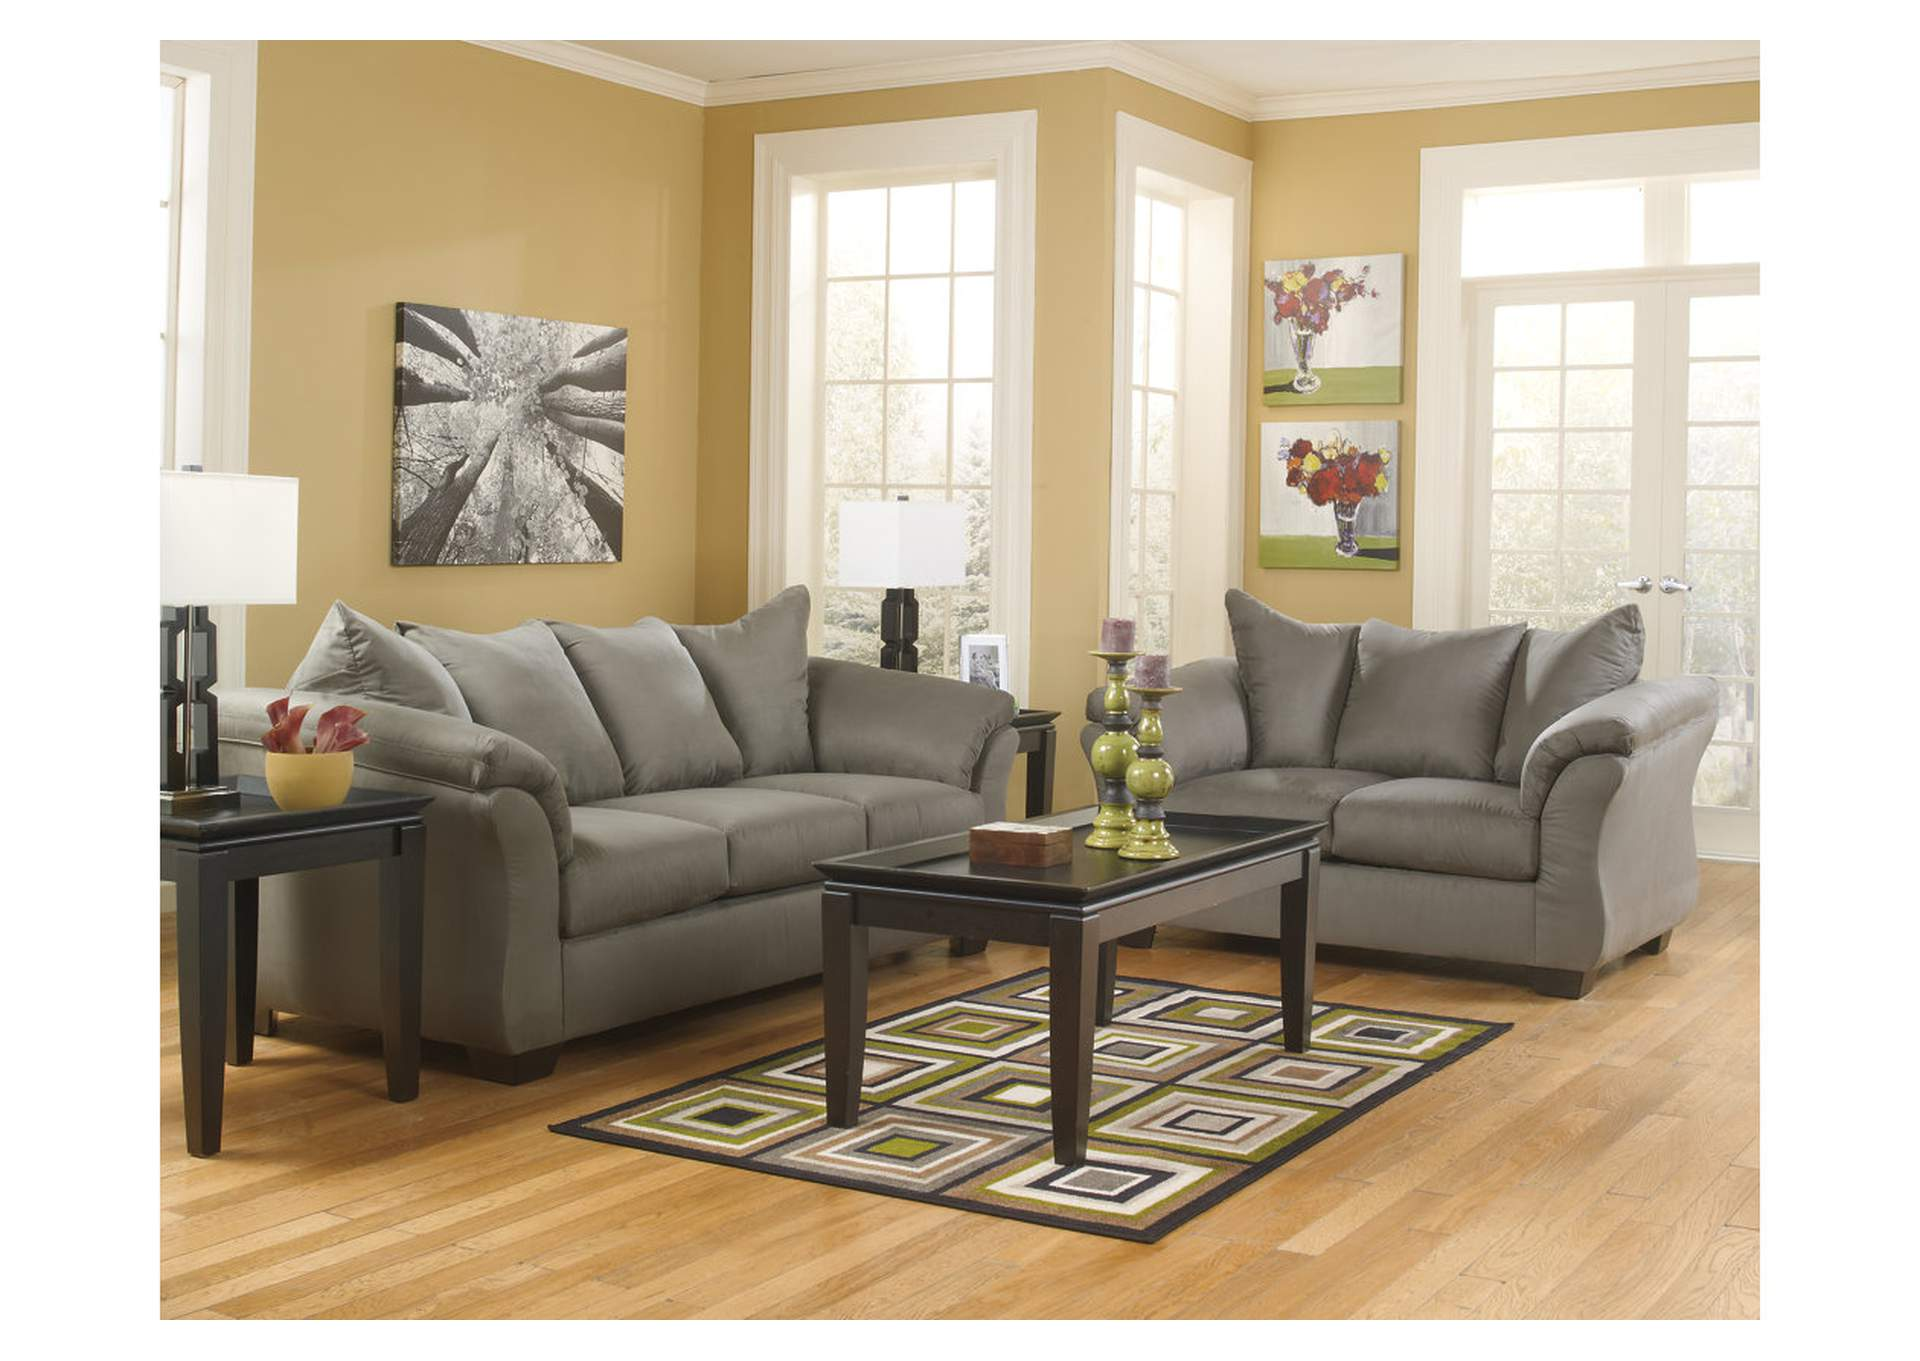 red microfiber reclining sofa chaise longue bizkaia harlem furniture darcy cobblestone & loveseat